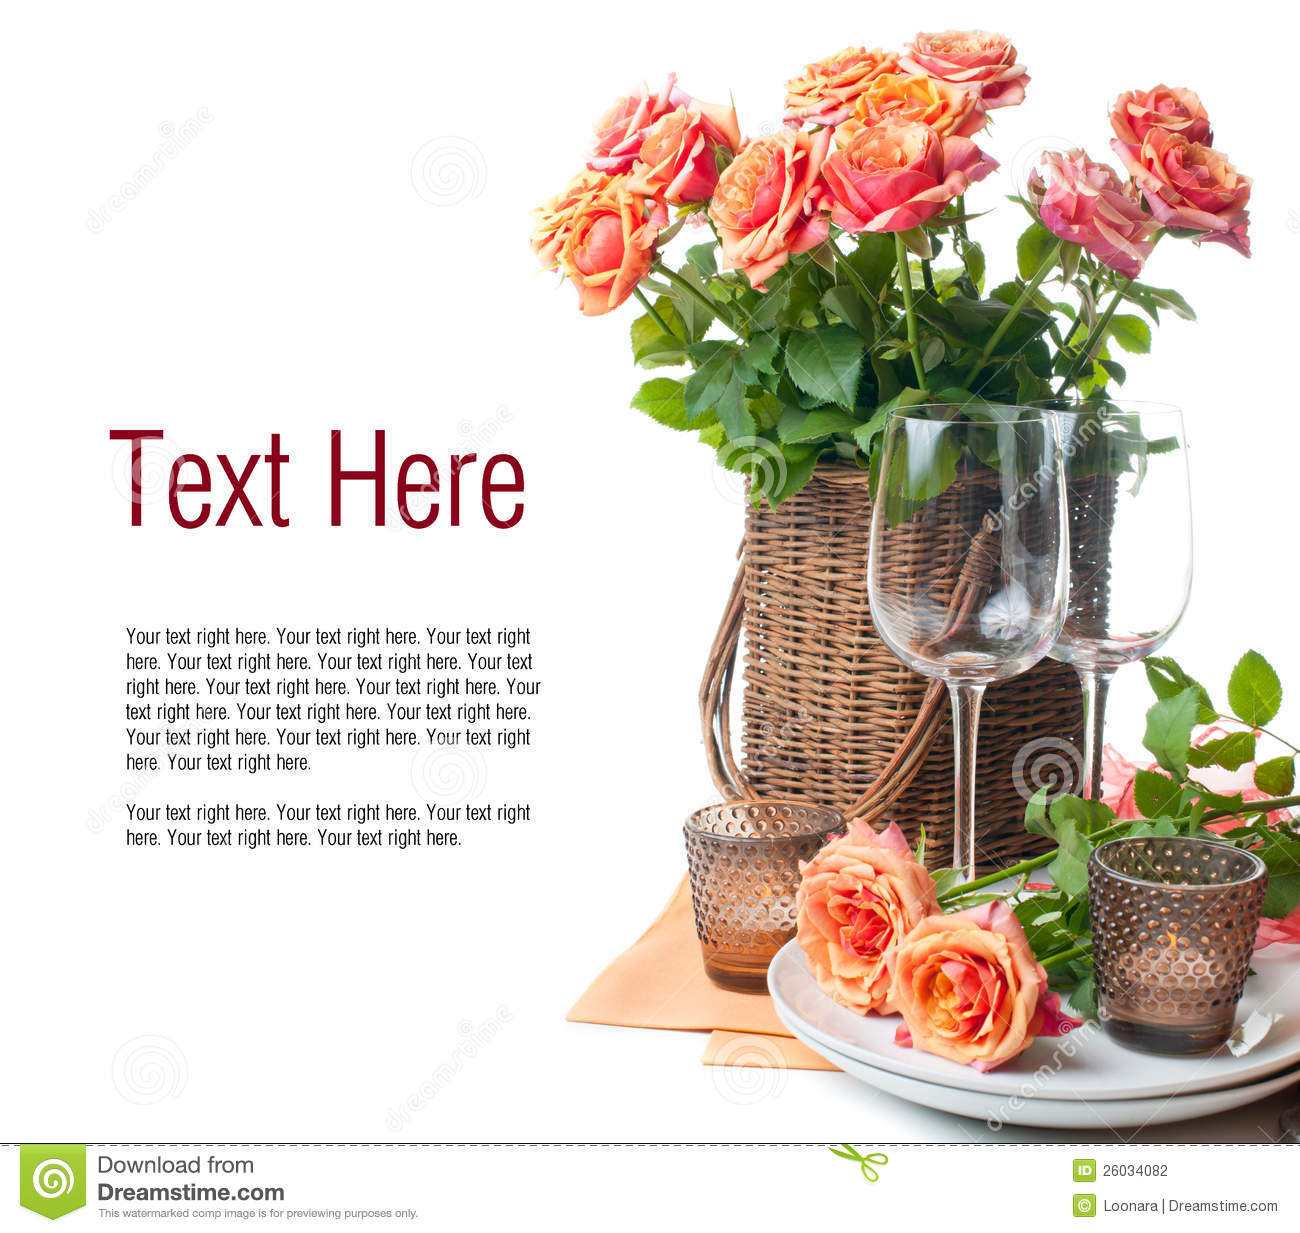 Template with festive table setting with roses stock photo image template with festive table setting with roses pronofoot35fo Image collections